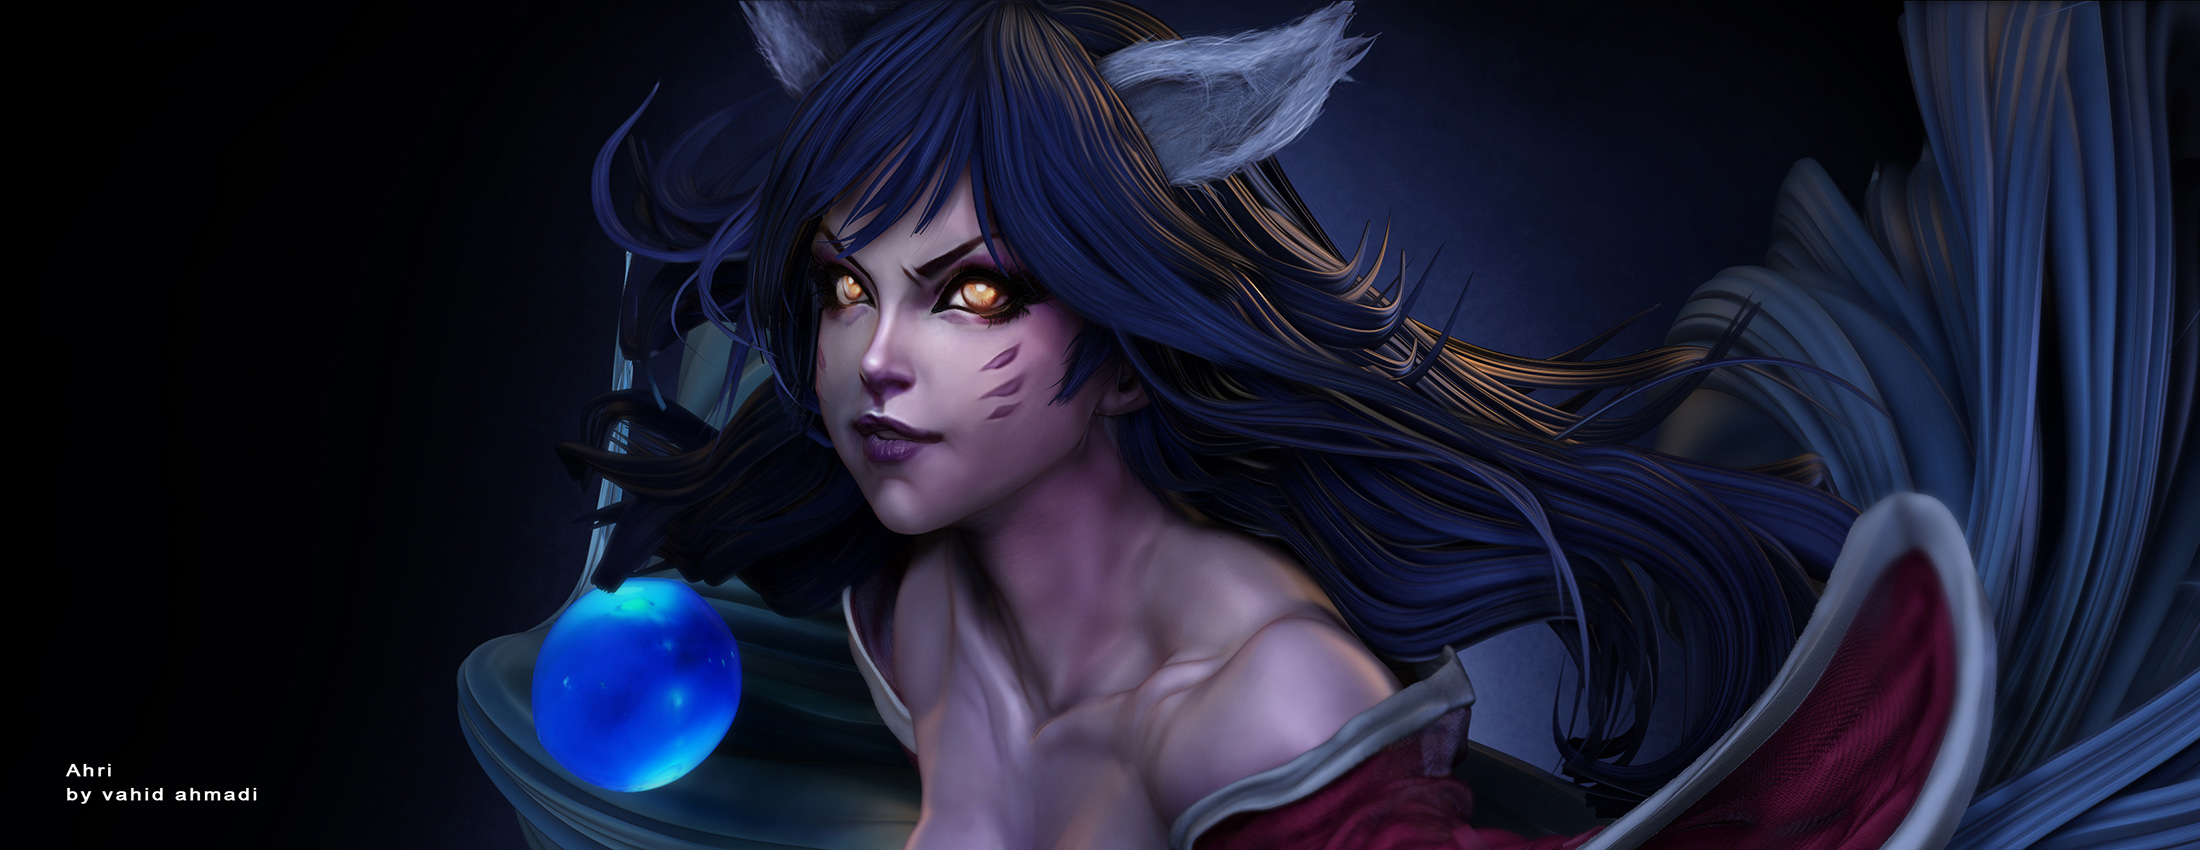 ahri league of legends  by vahid ahmadi ver3-009b.jpg